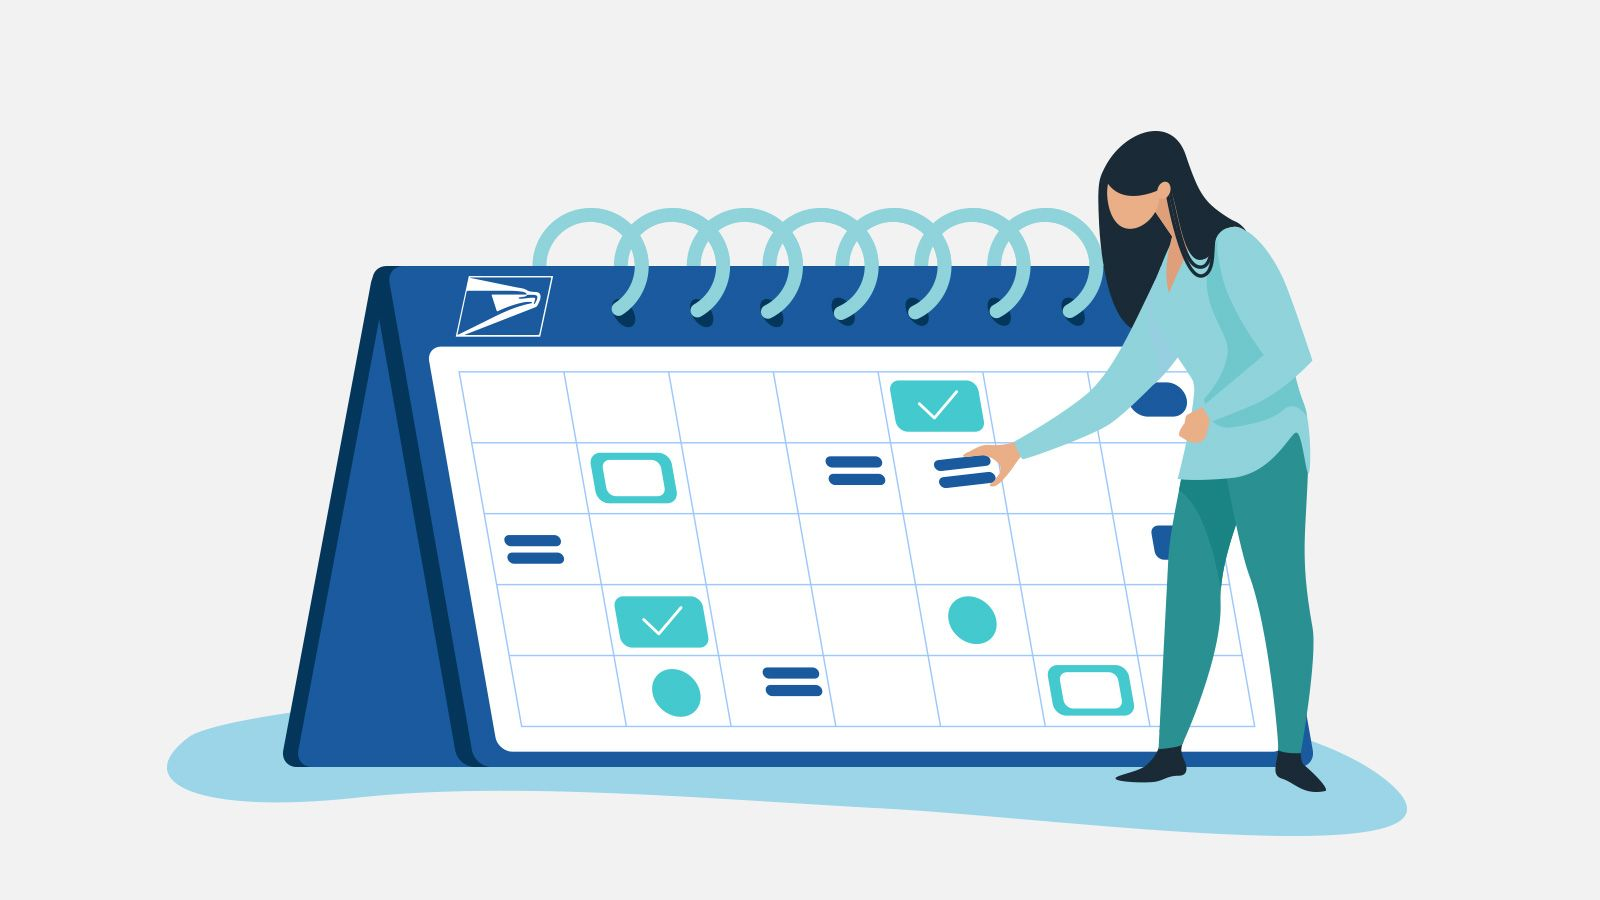 USPS Holiday Schedule 2021: The Dates You Should Know